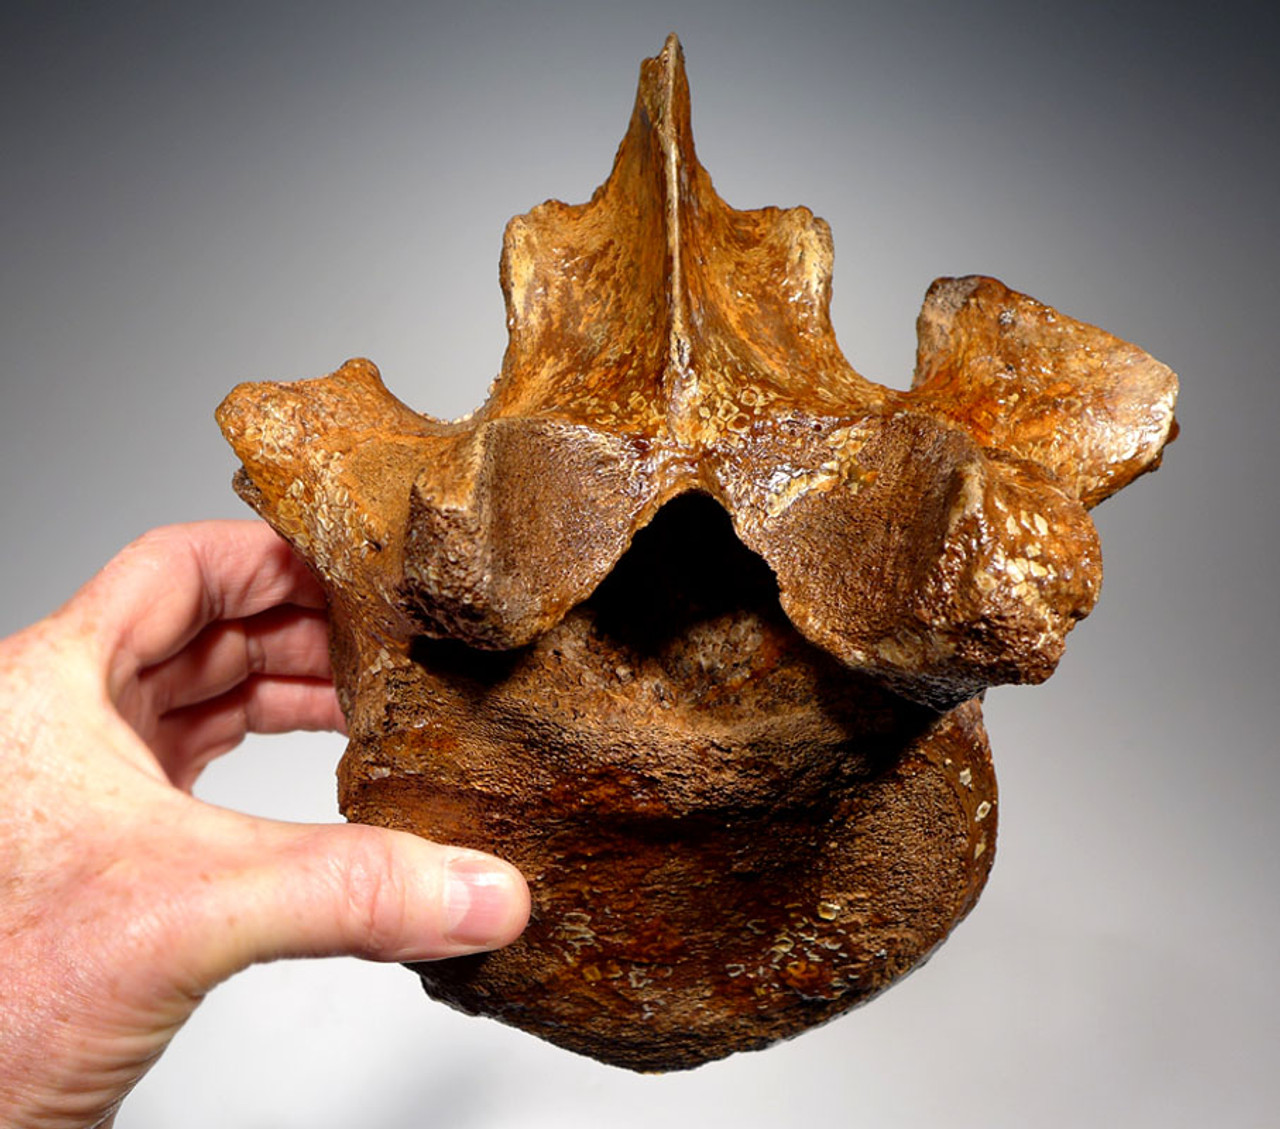 LMX121 - INTACT WOOLLY MAMMOTH CERVICAL NECK VERTEBRA WITH DORSAL PROCESS